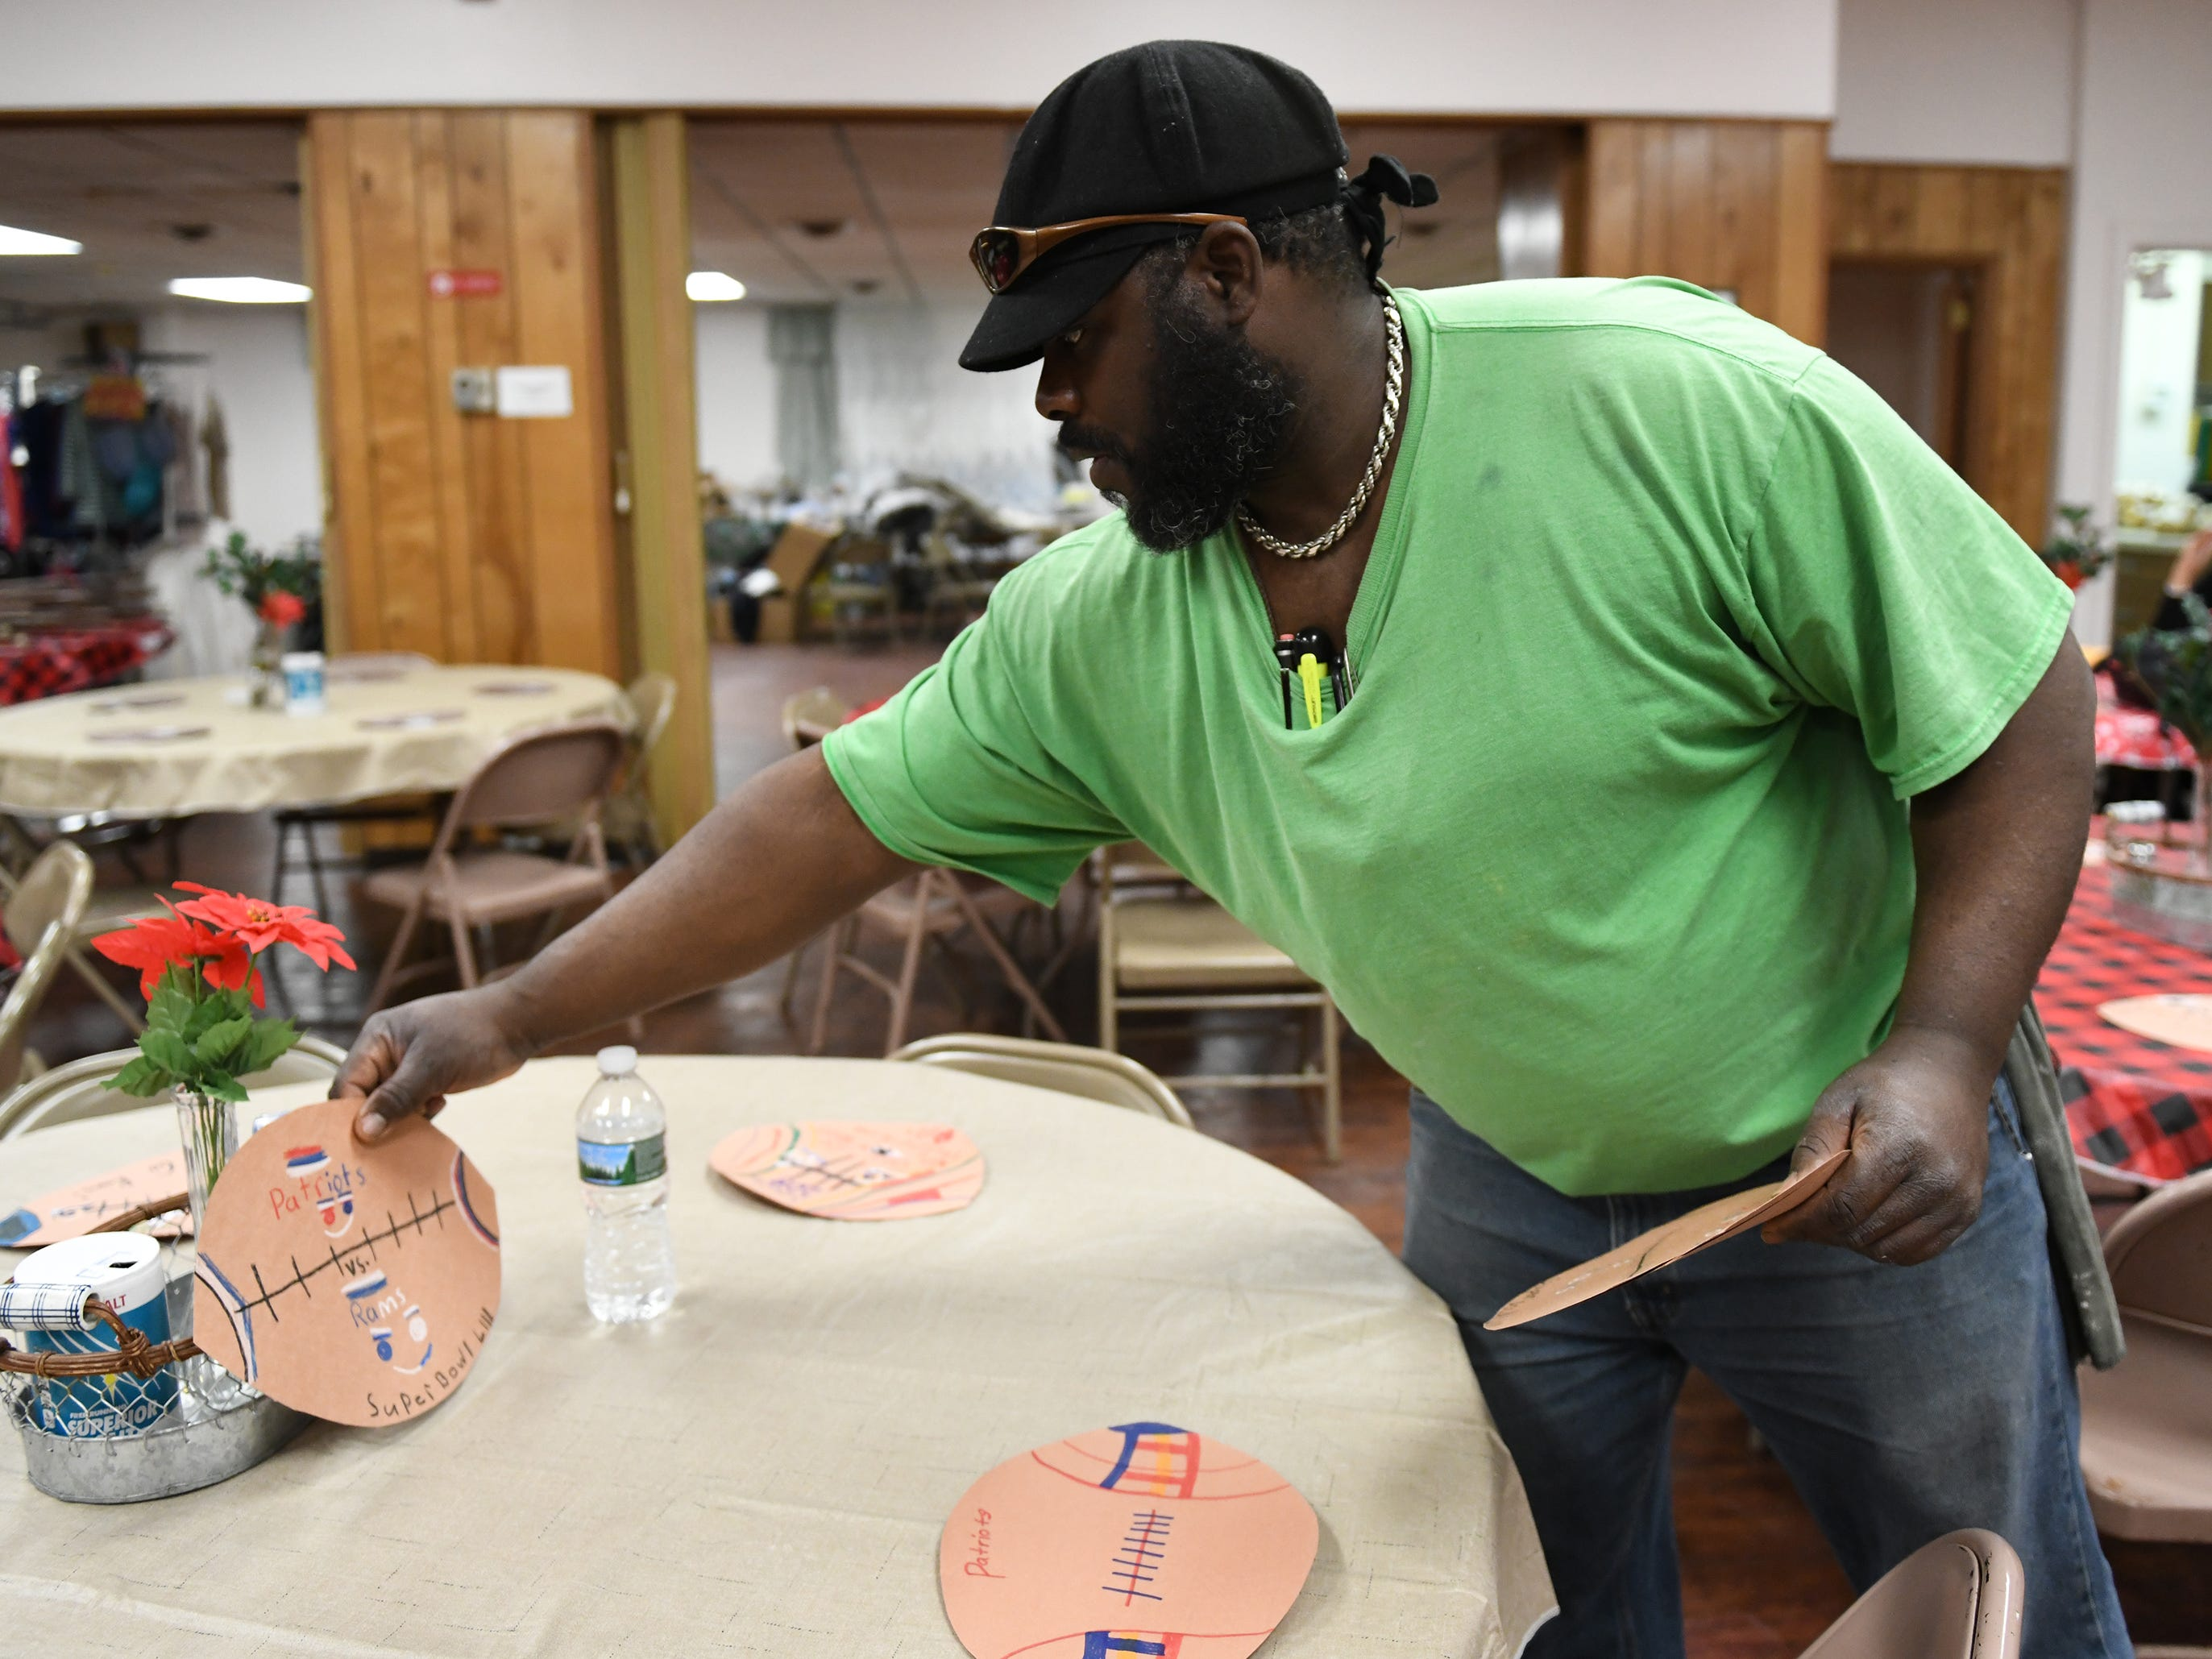 First United Methodist Church soup kitchen volunteer, Stephen W. Jones, 45, of Cumberland County, helps to set Super Bowl placemats made by Rossi Elementary School students on Tuesday, Jan. 29, 2019.